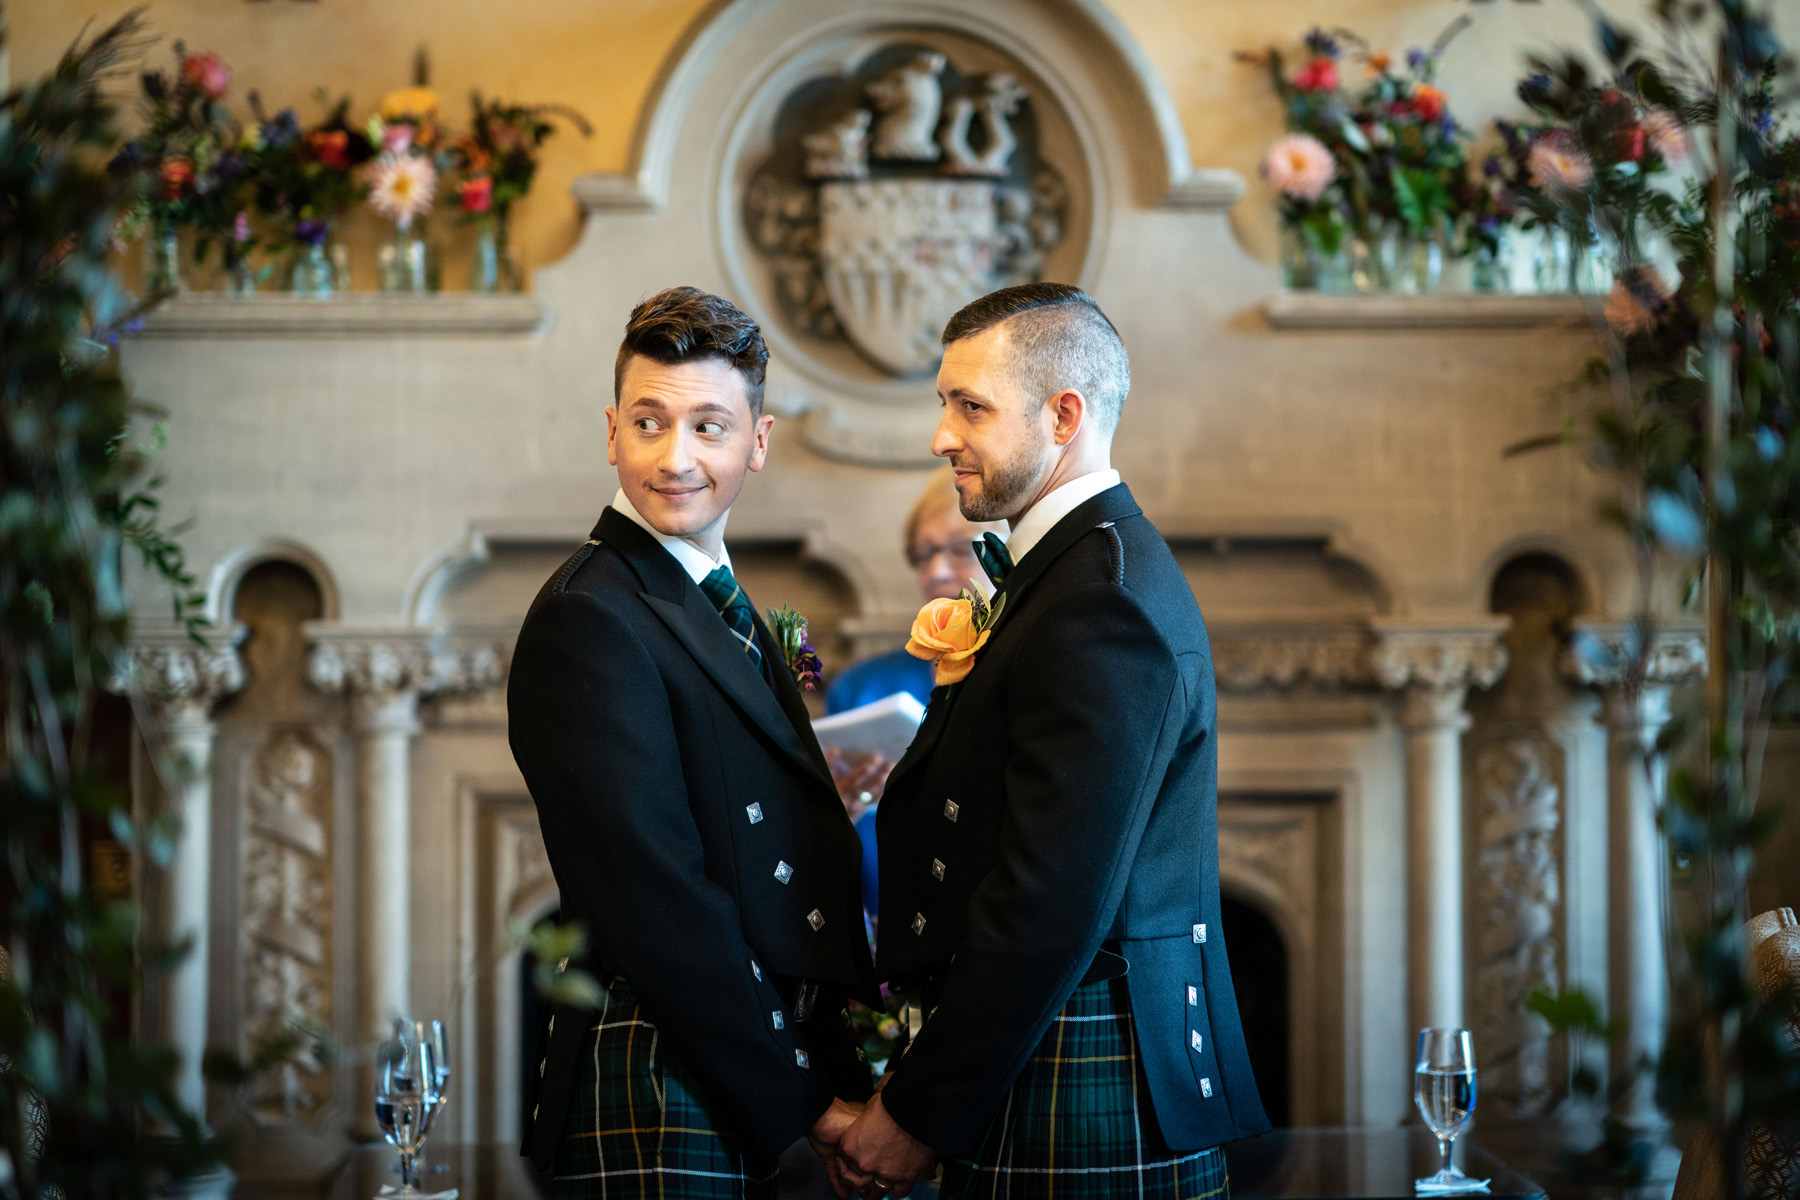 Two Grooms married in the Oak room at The Elvetham Hotel